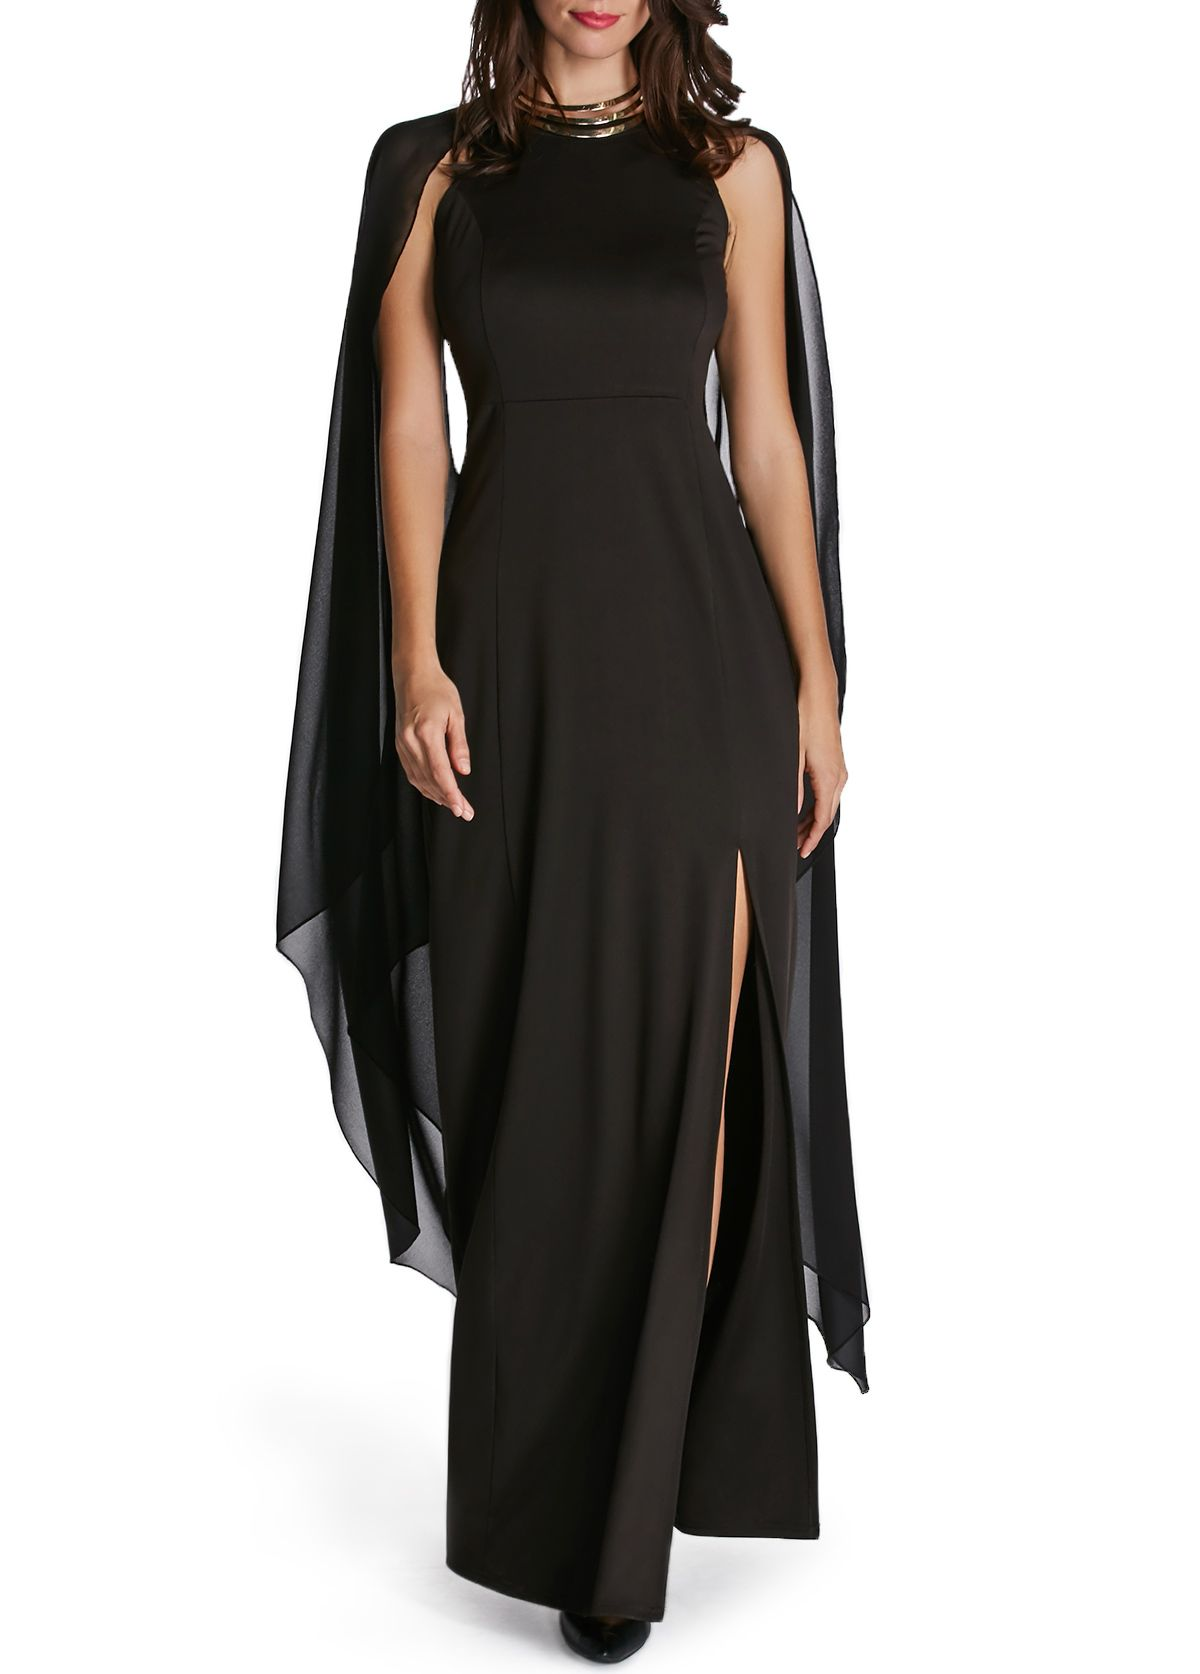 Cape sleeve front slit solid black maxi dress in my favorite